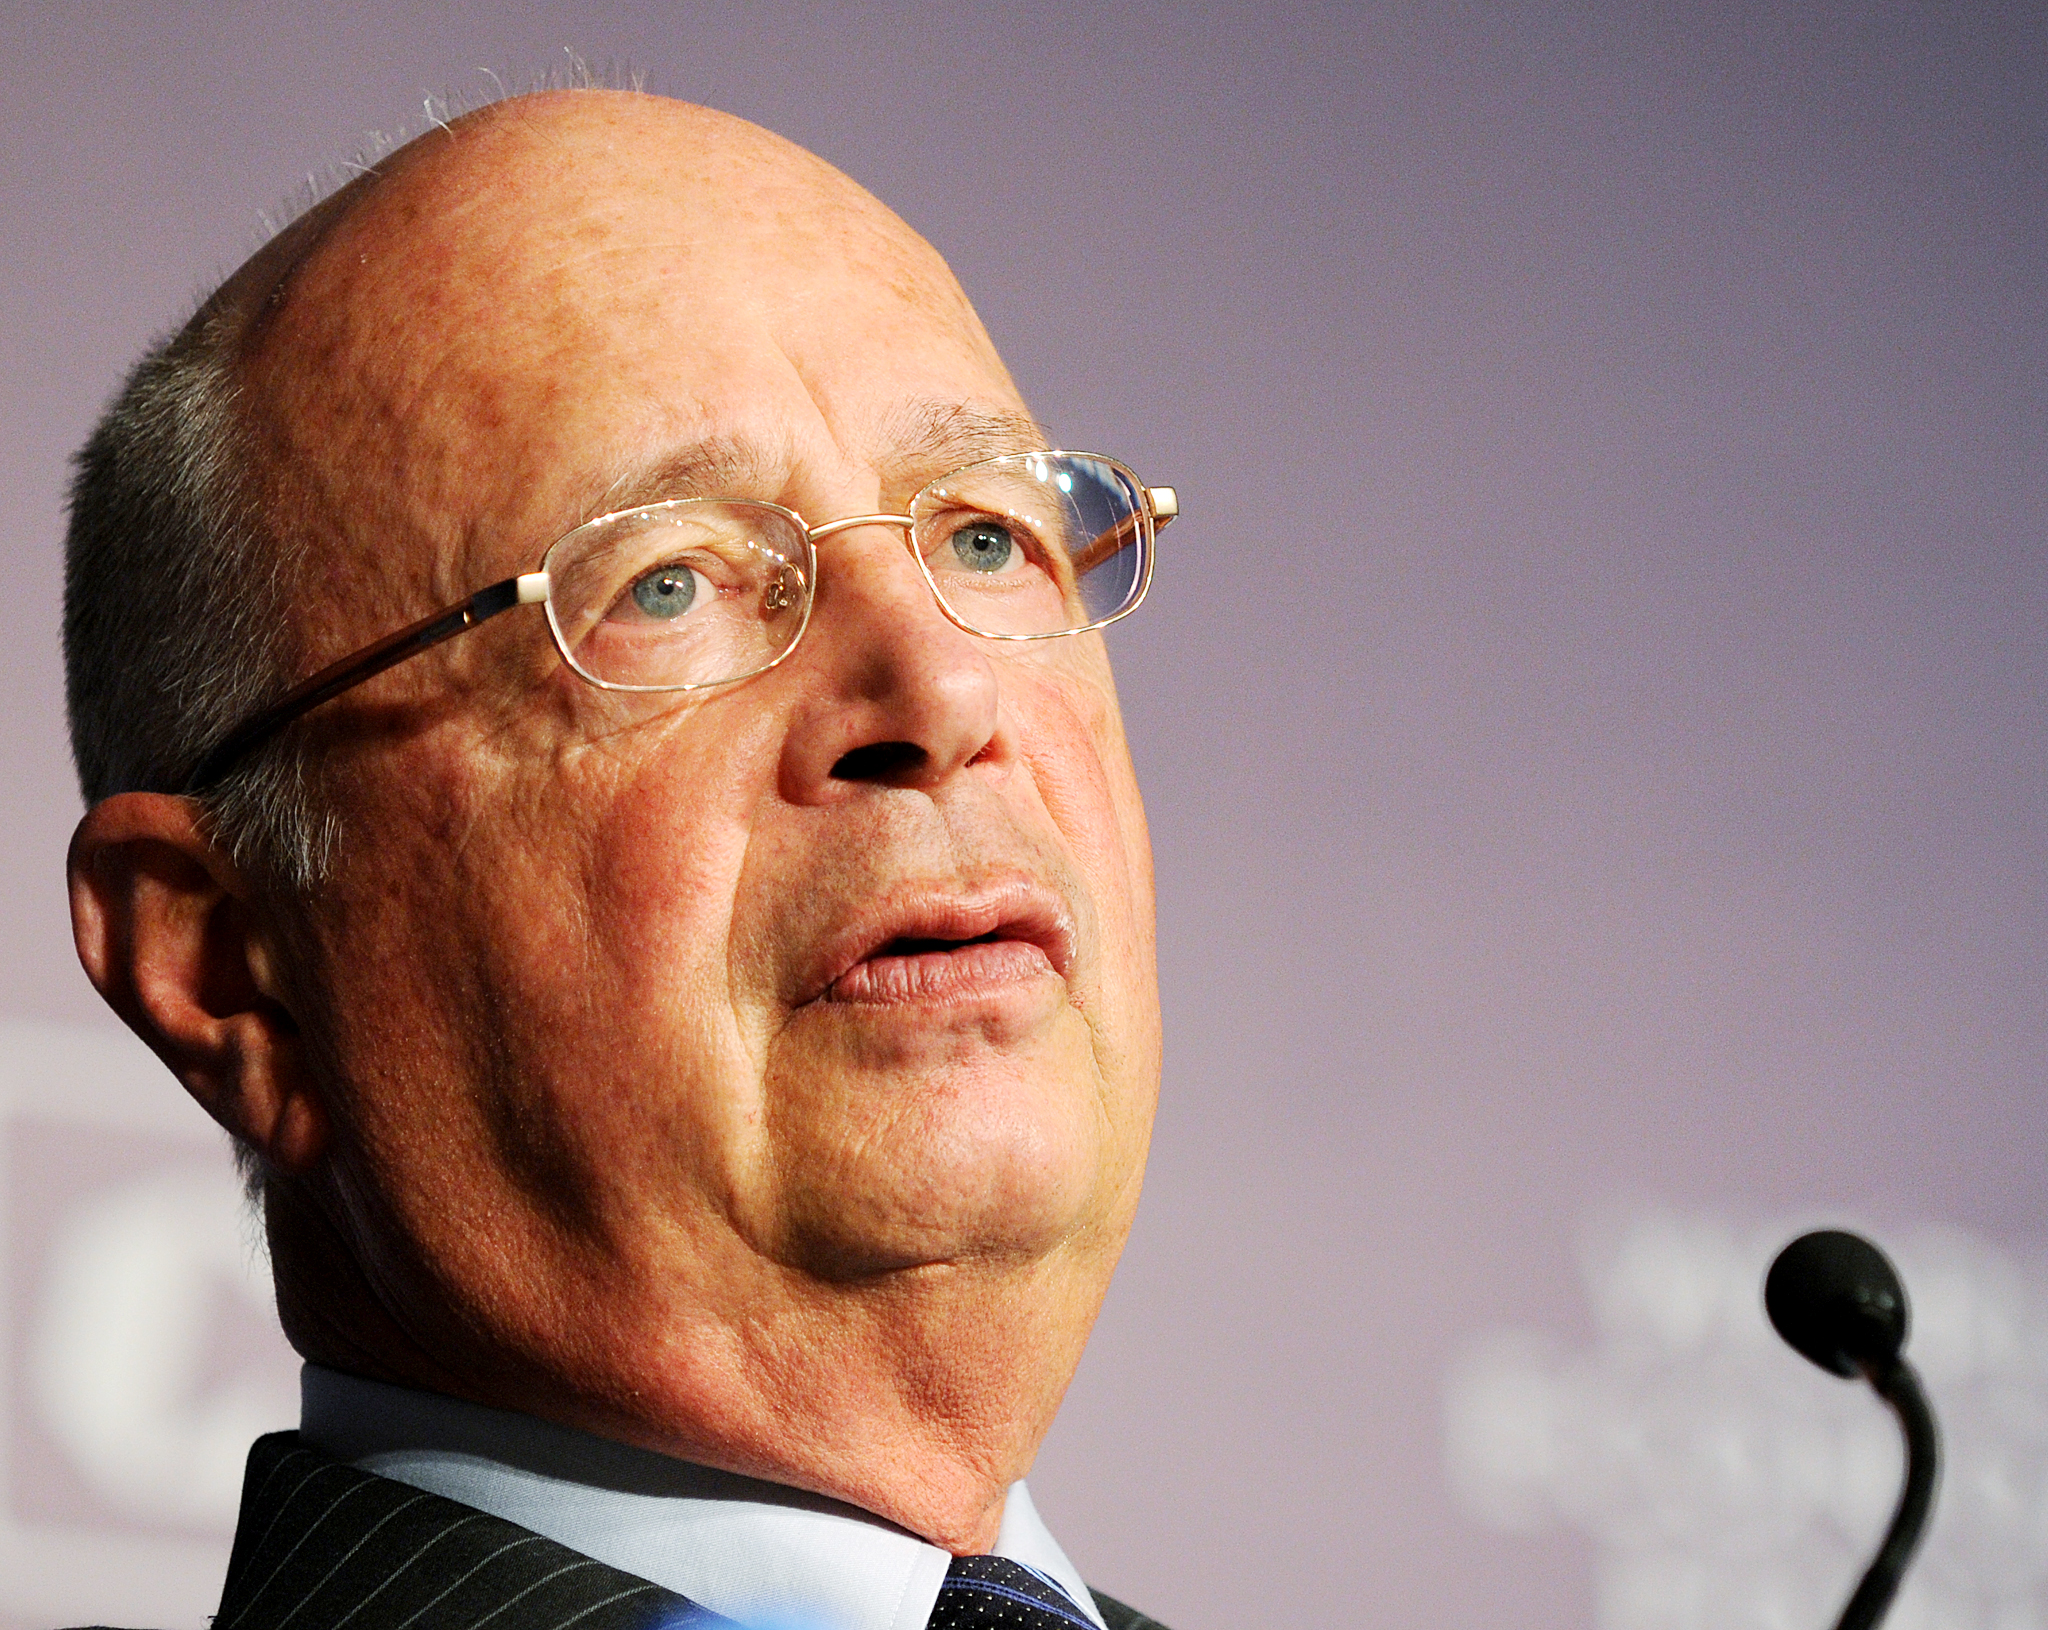 Founder and Executive Chairman of World Economic Forum Professor Klaus Schwab.